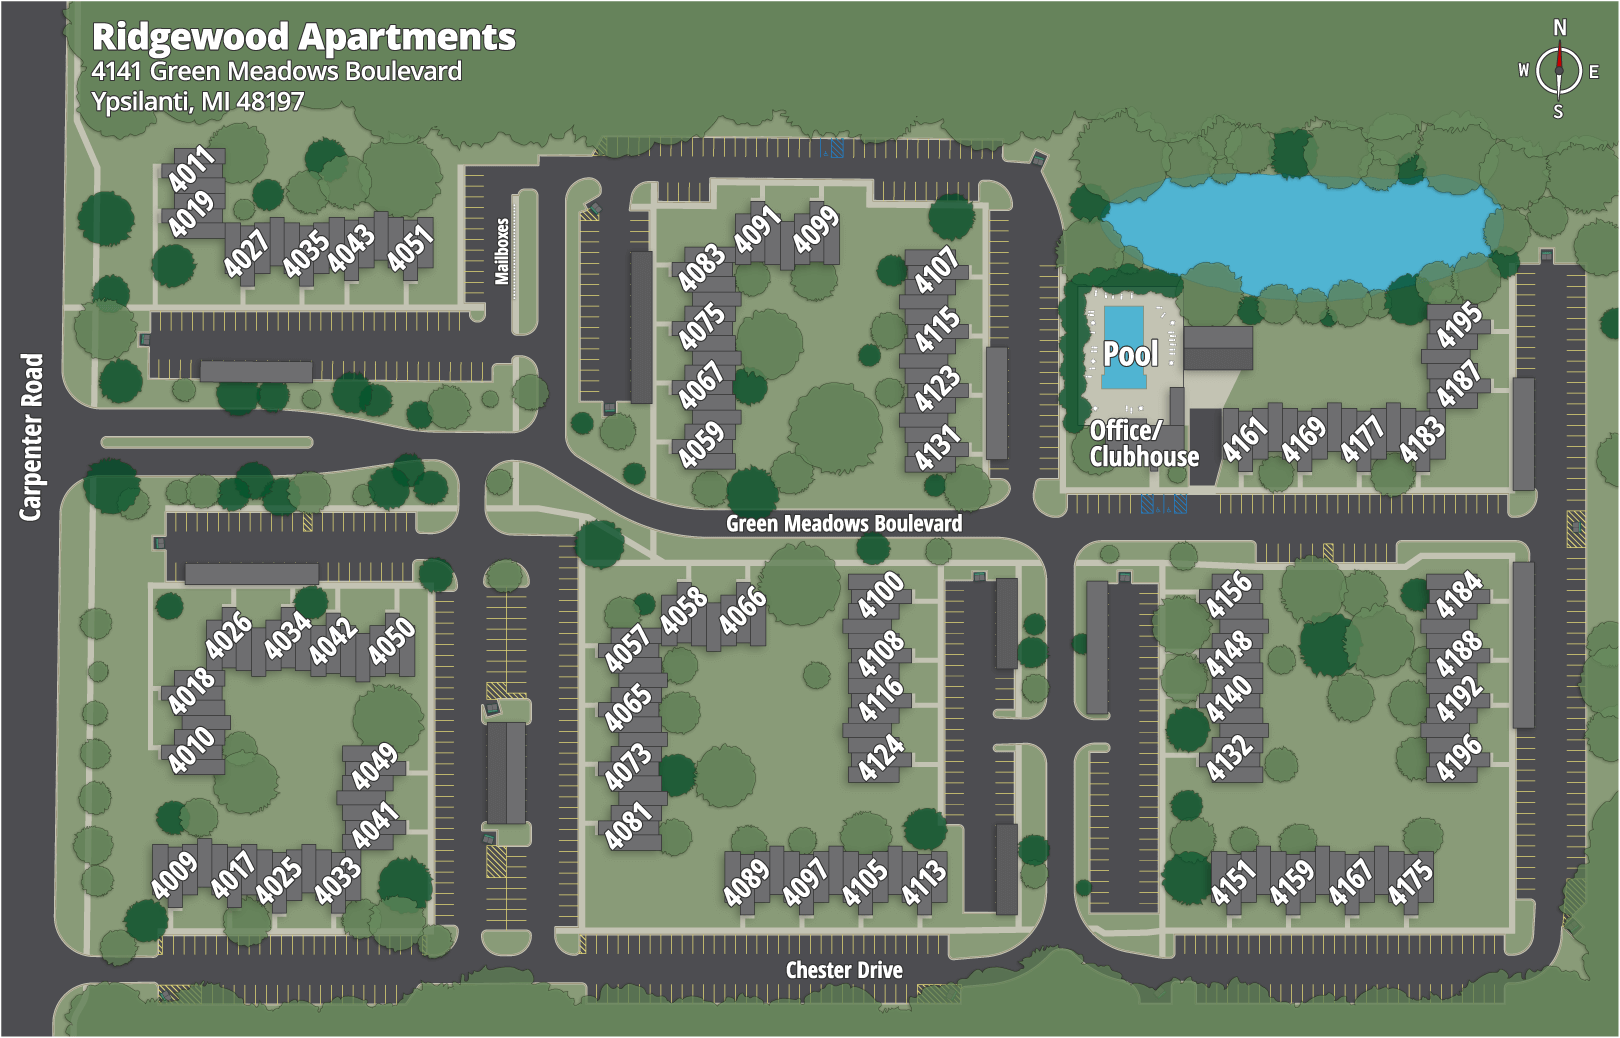 Ridgewood Apartments Map